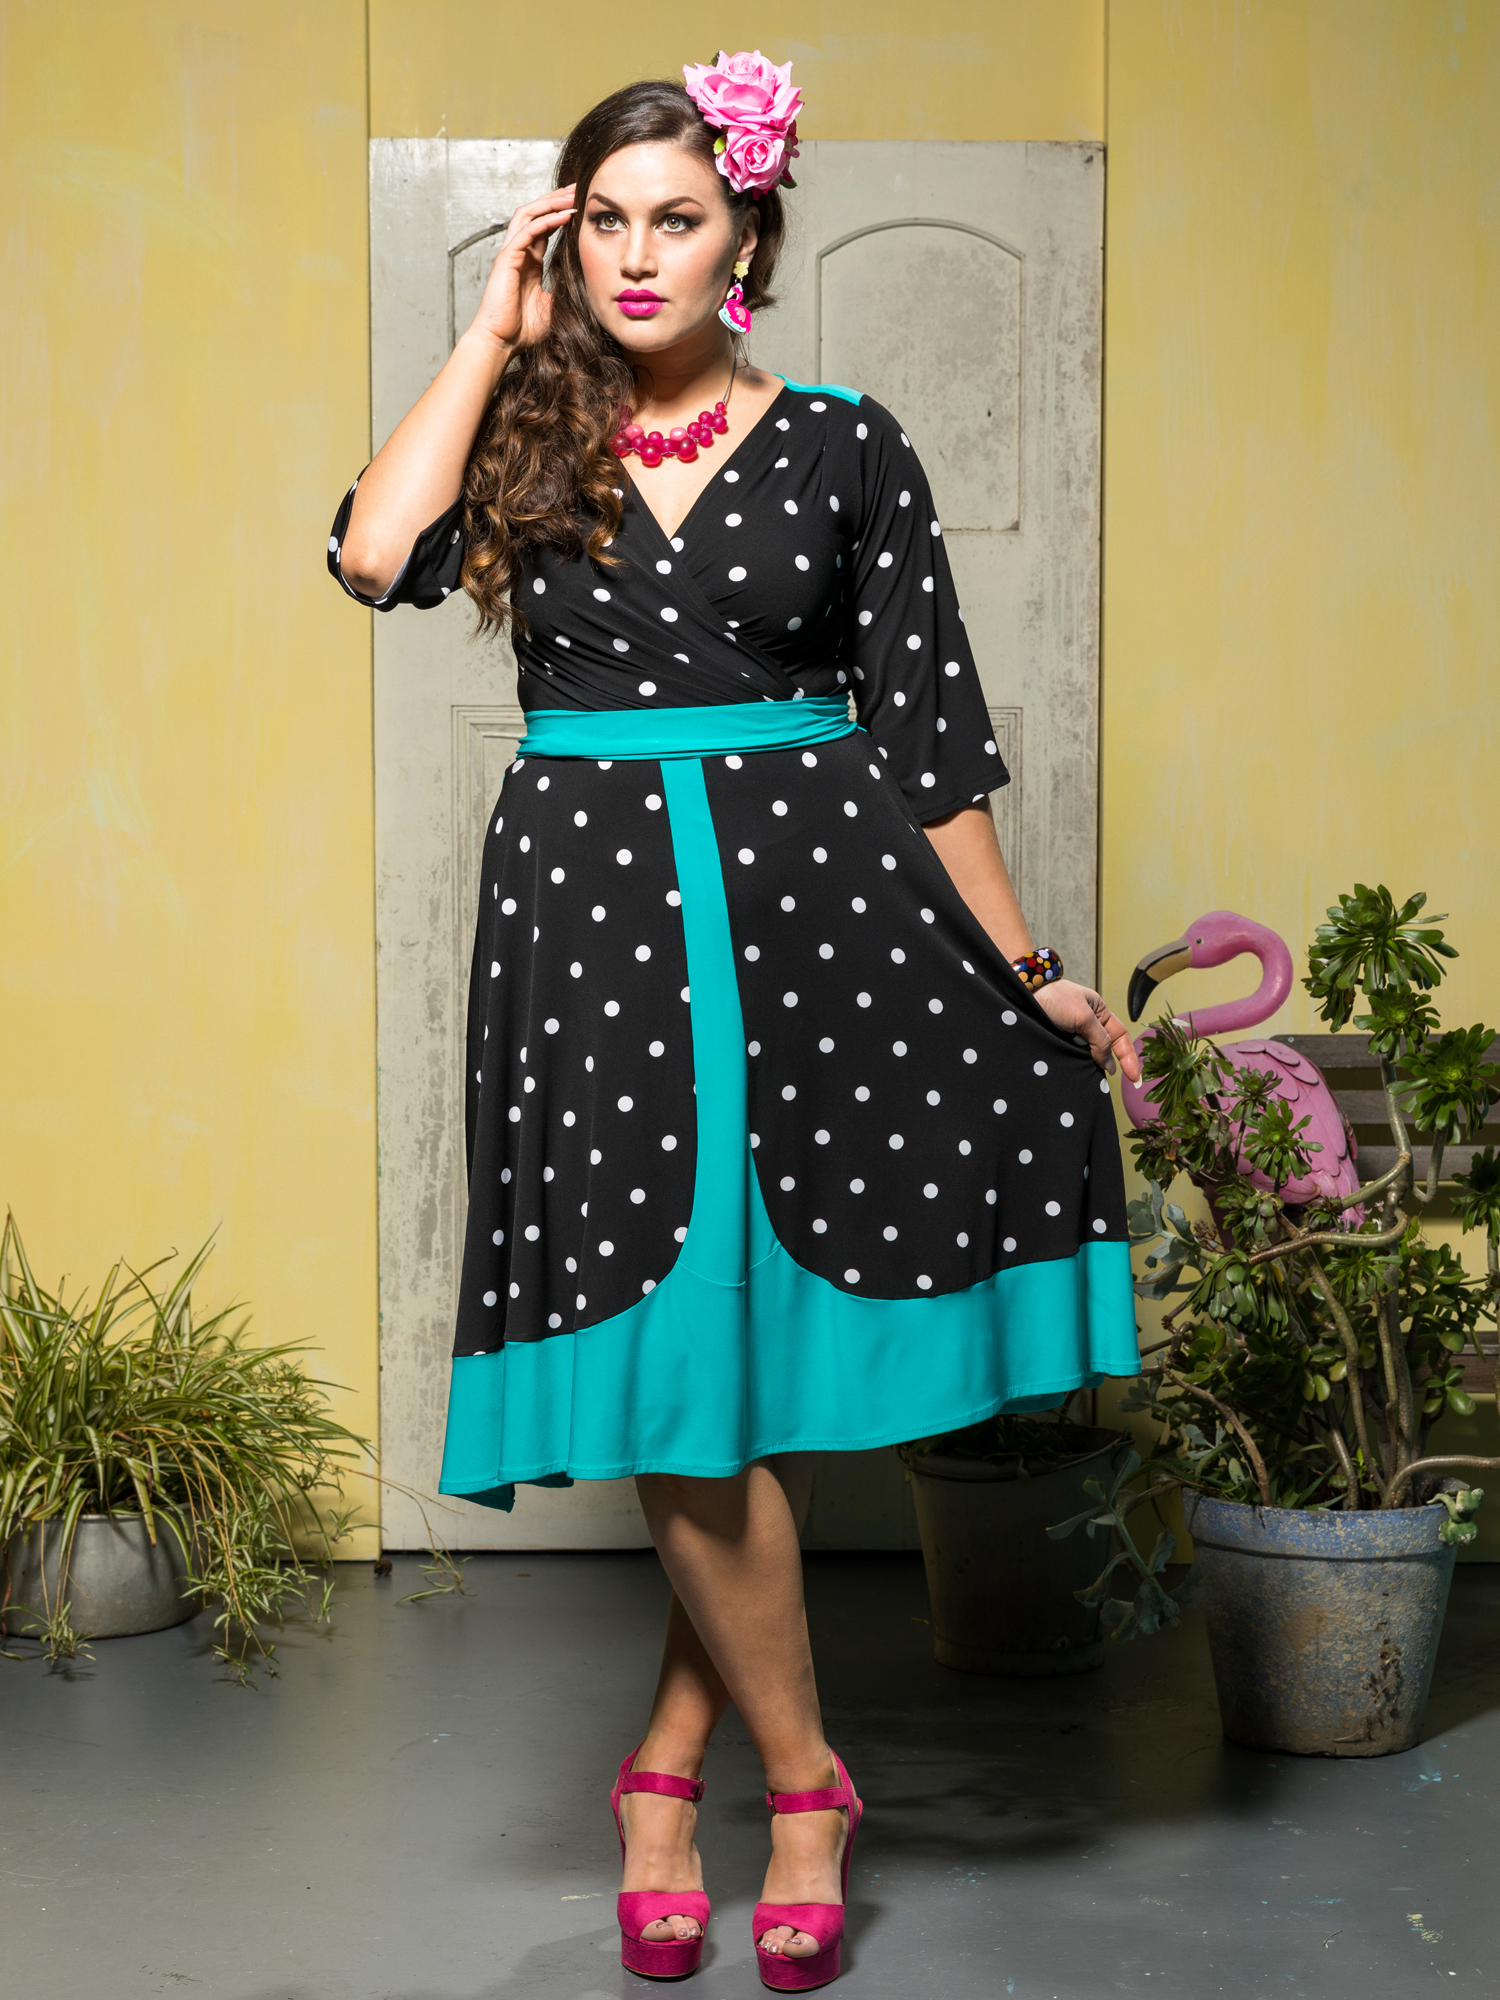 45 Salsa Swing Dress. lunares3.1500.2000